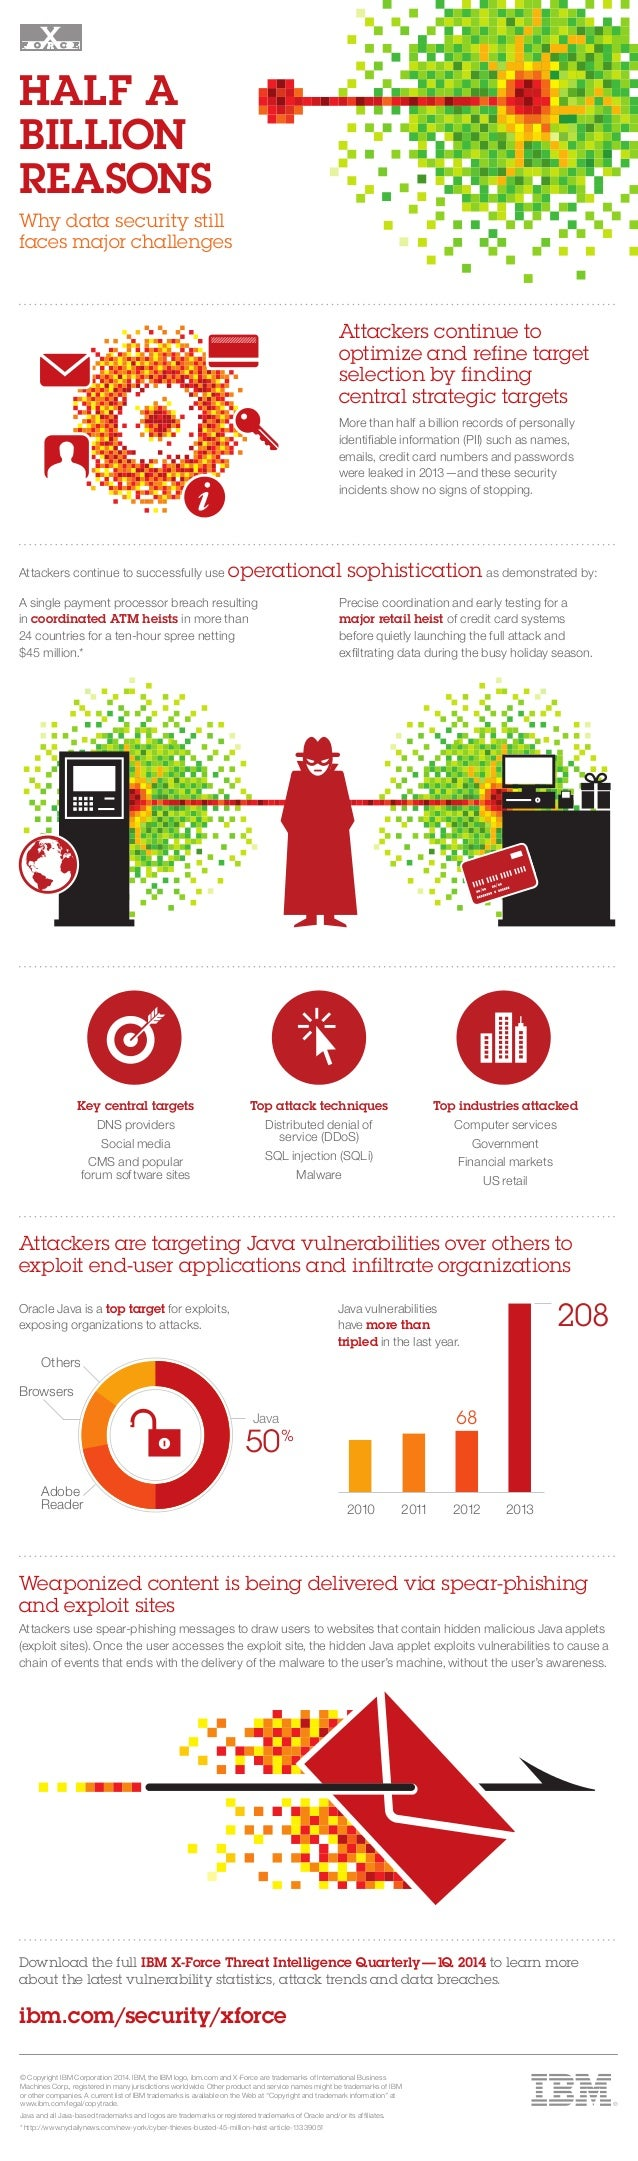 Attackers continue to optimize and refine target selection by finding central strategic targets More than half a billion r...